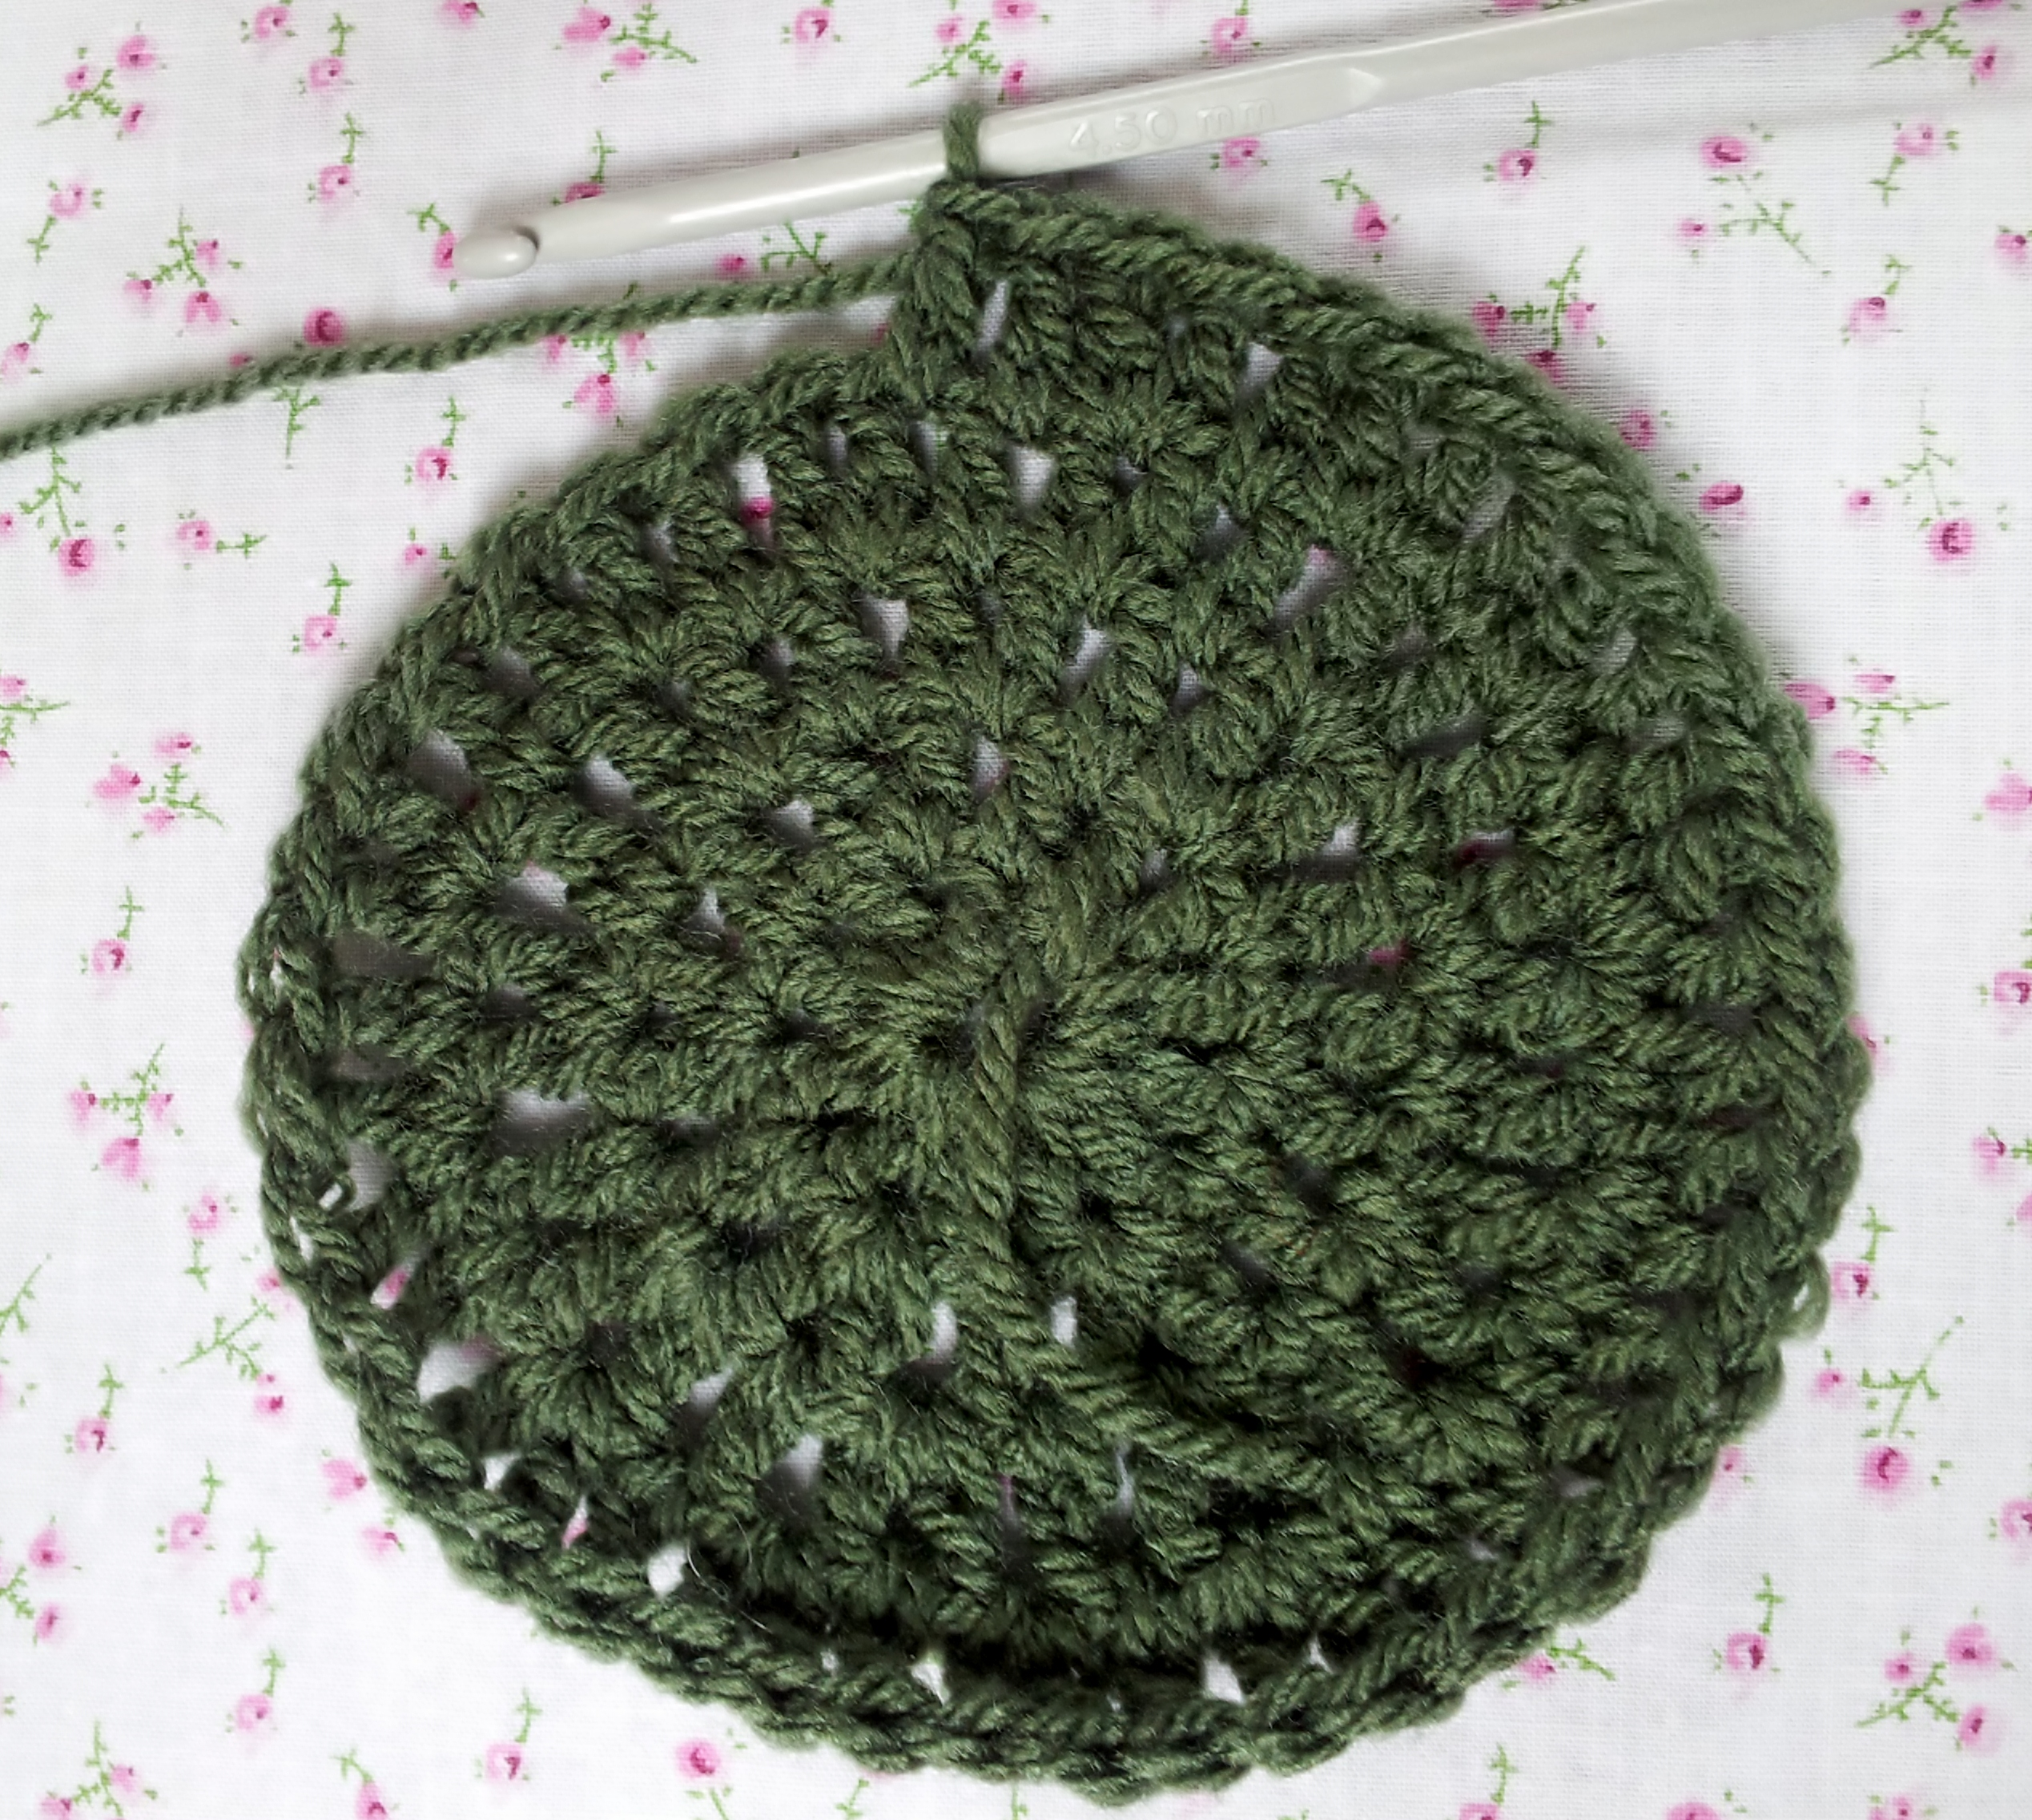 Crocheting Rounds : Here?s my hat after round 8: (4 rounds after the maker):